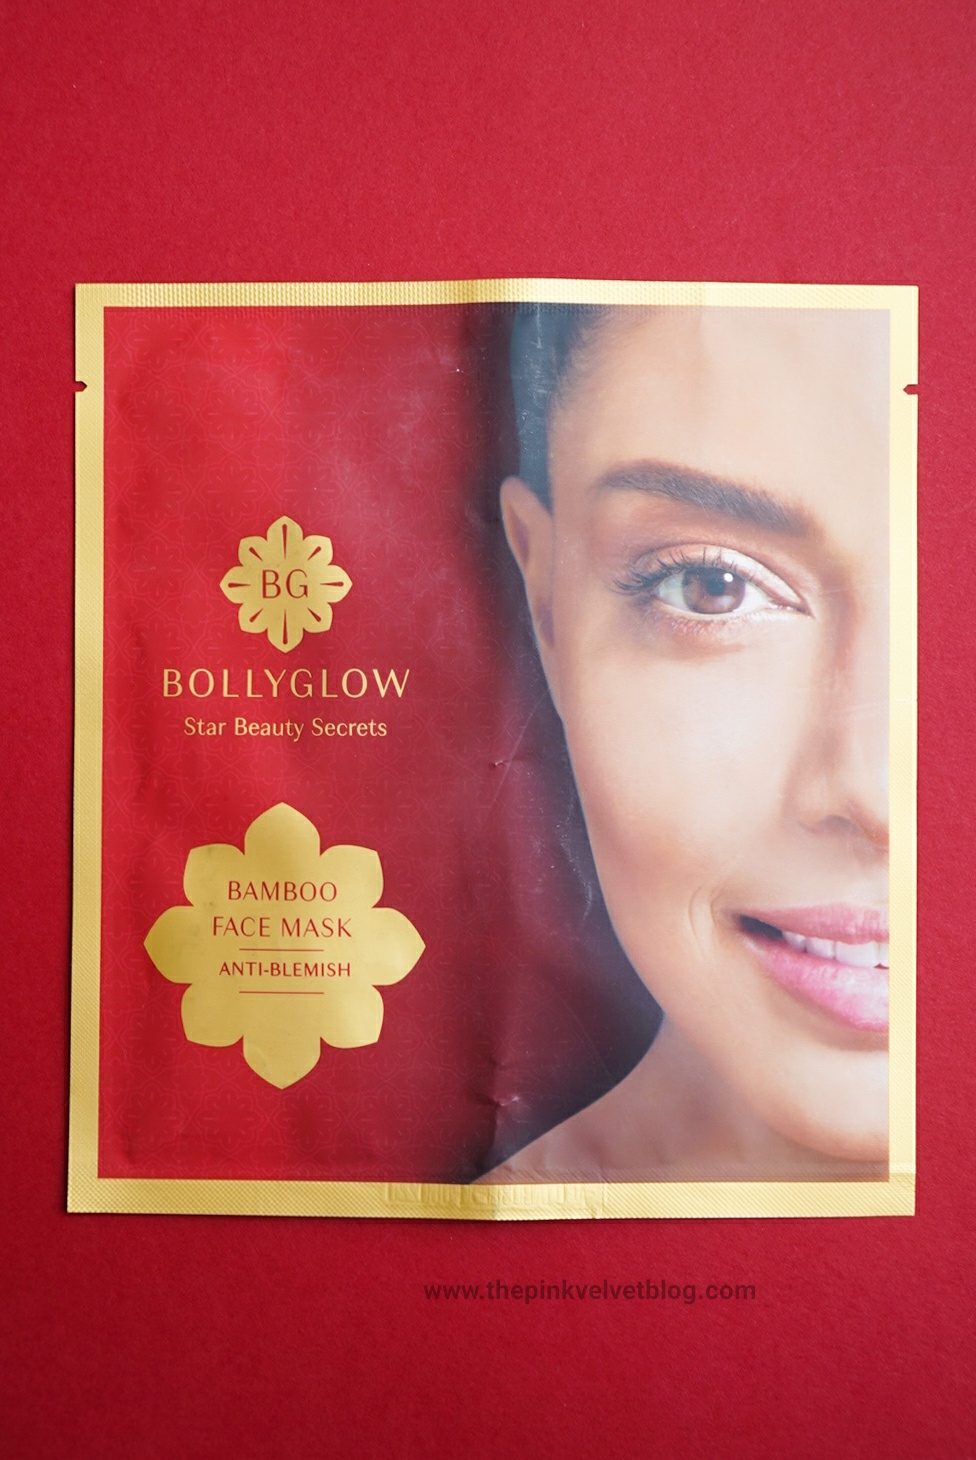 The Sensational Six September FAB BAG - Bollyglow Bamboo Sheet Mask